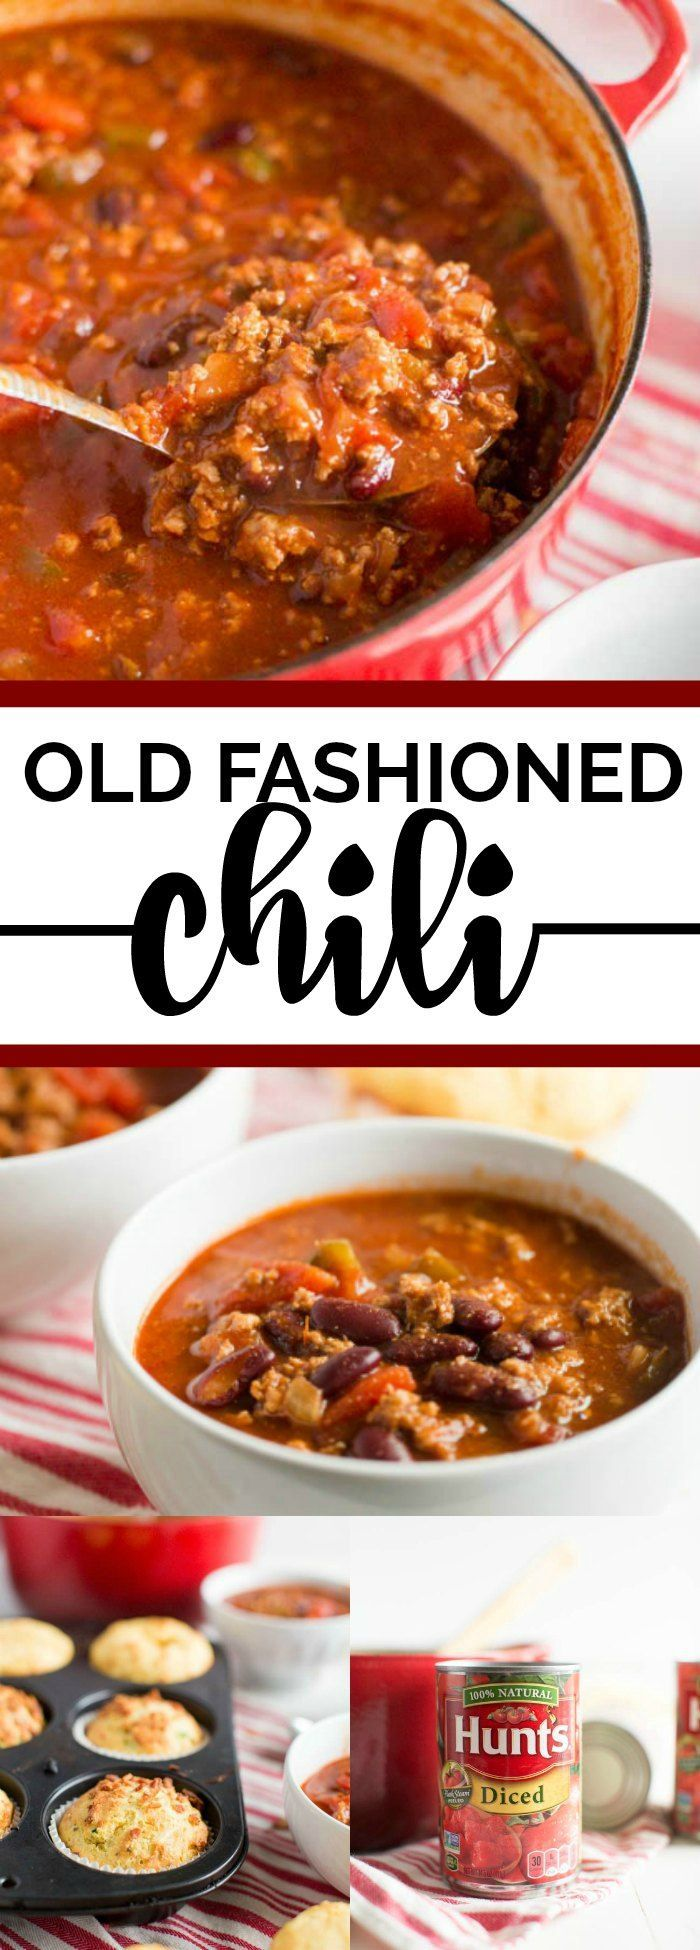 Old Fashioned Chili Recipe This Is So Easy It S Seriously The Best We Love It Chilirecipe Best Chili Recipe Old Fashioned Chili Recipe Chili Recipe Easy